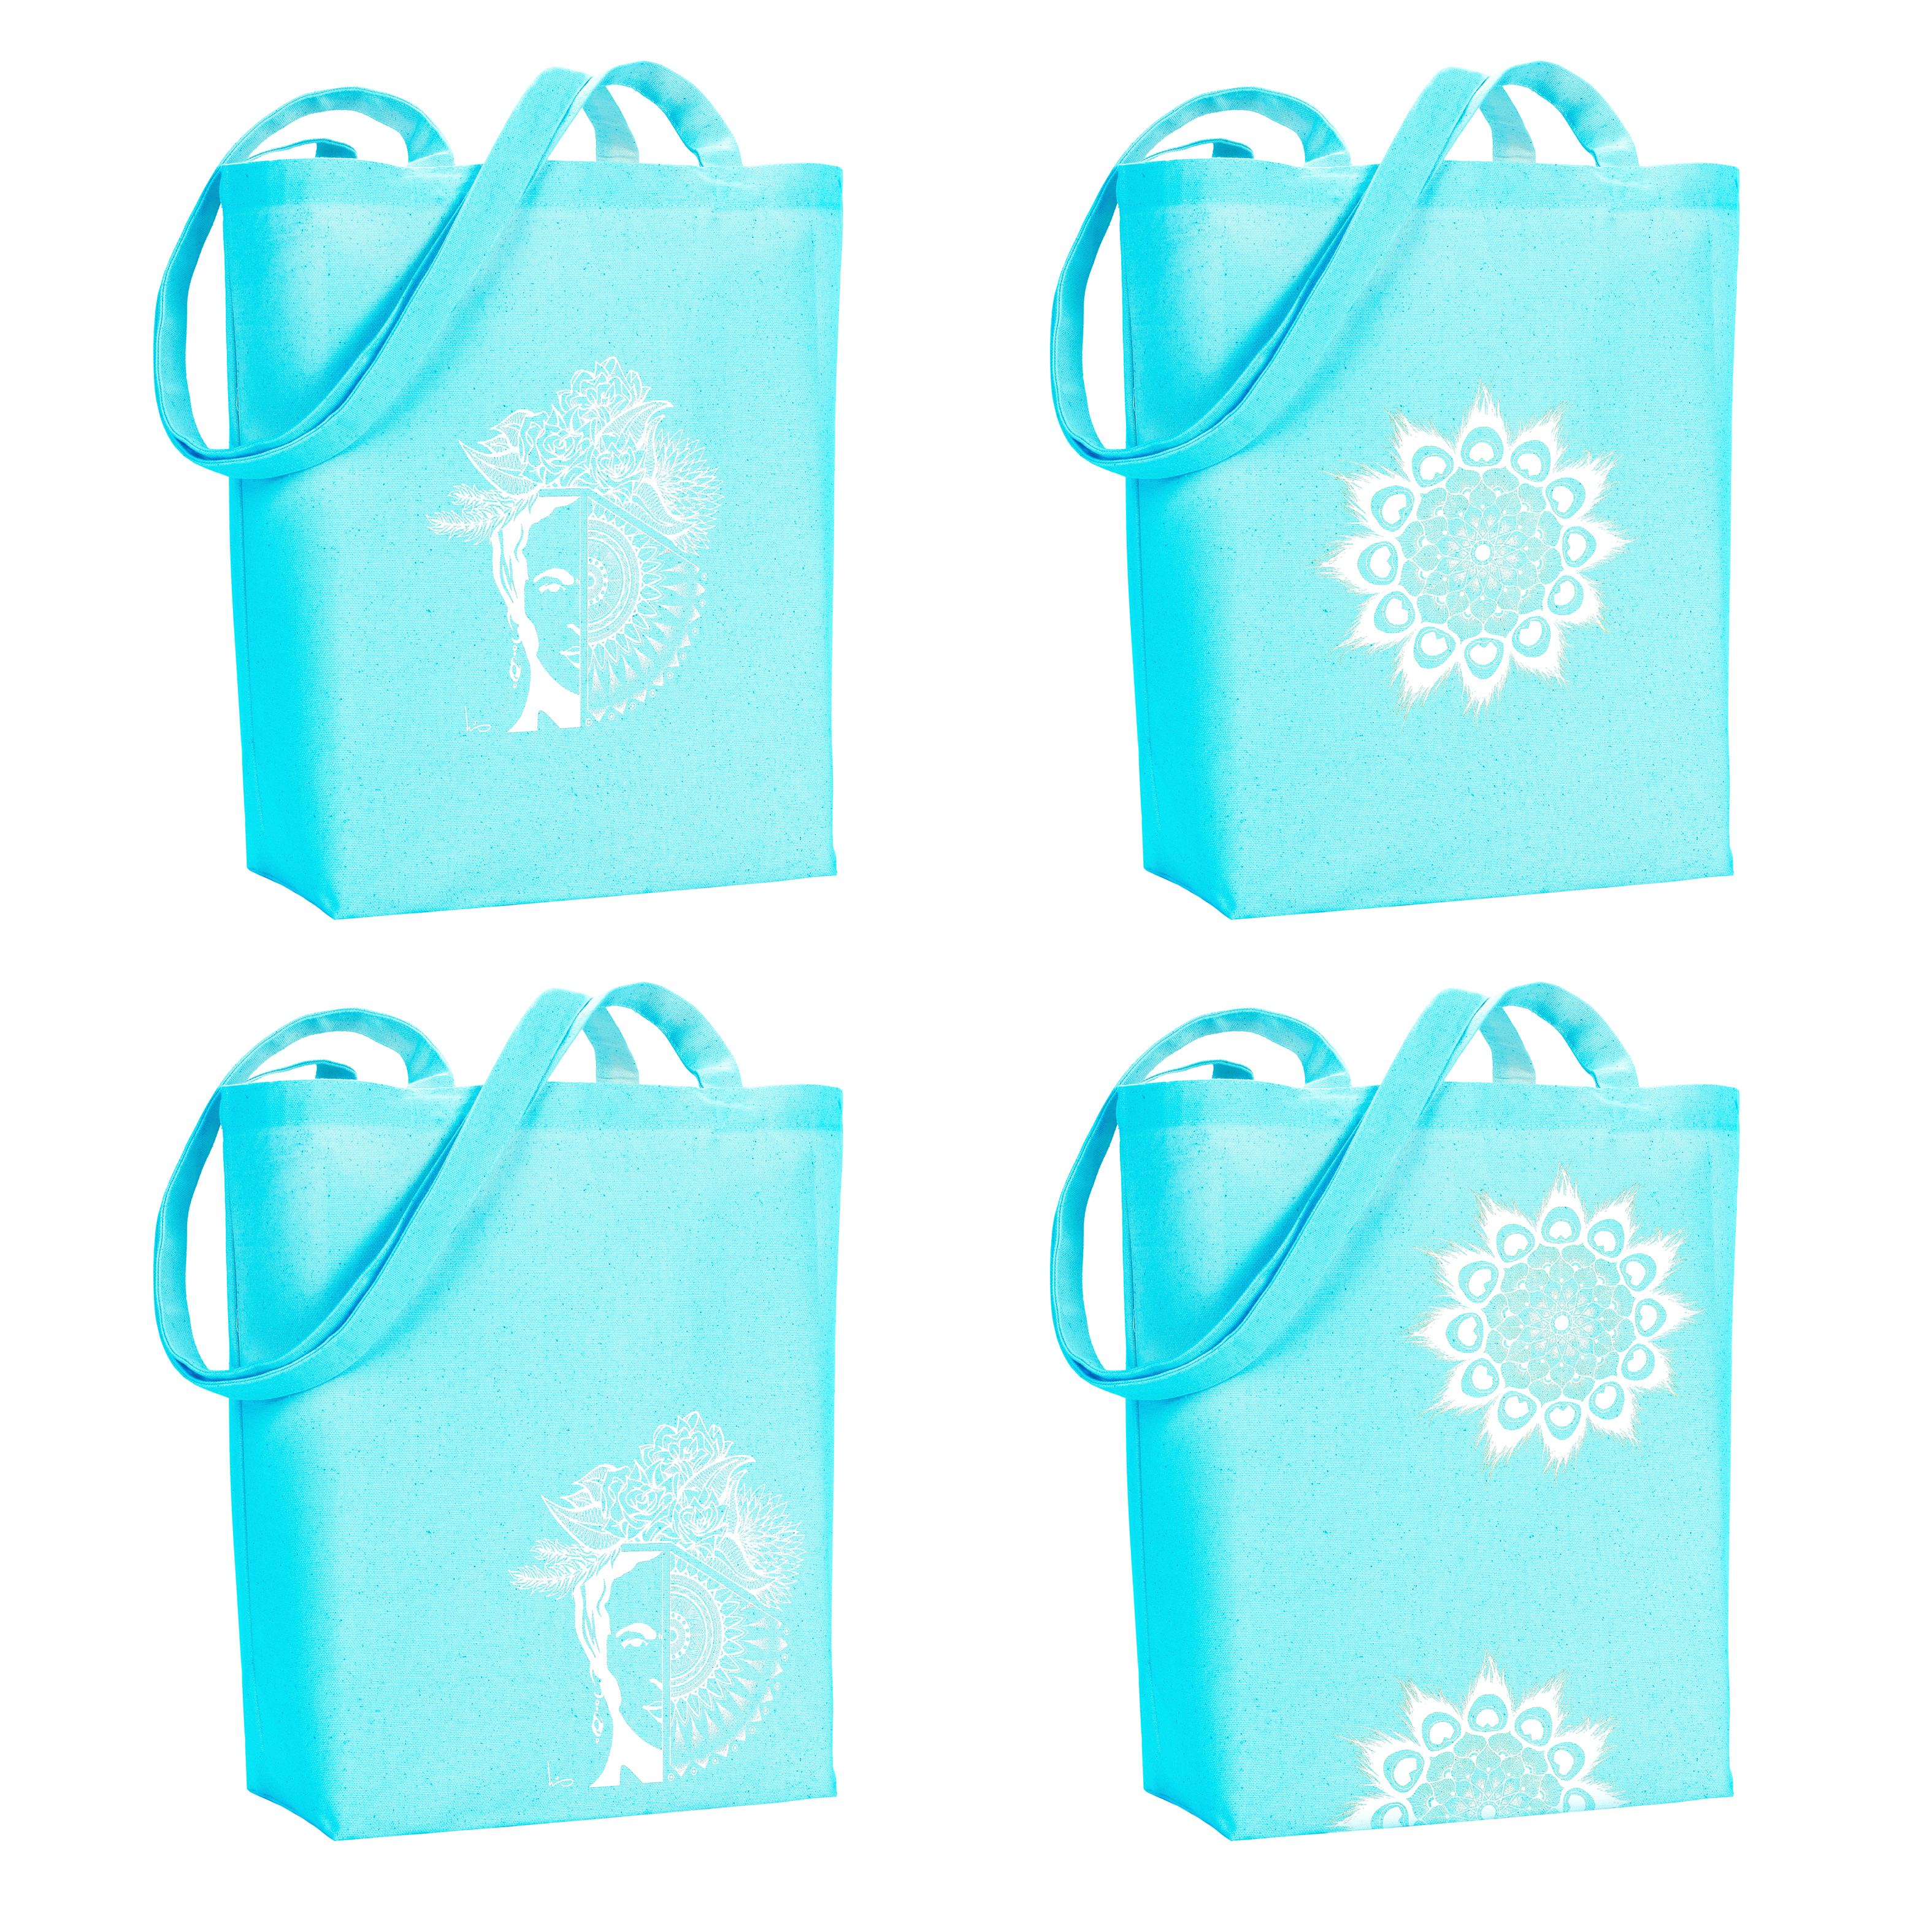 All designs in turquoise